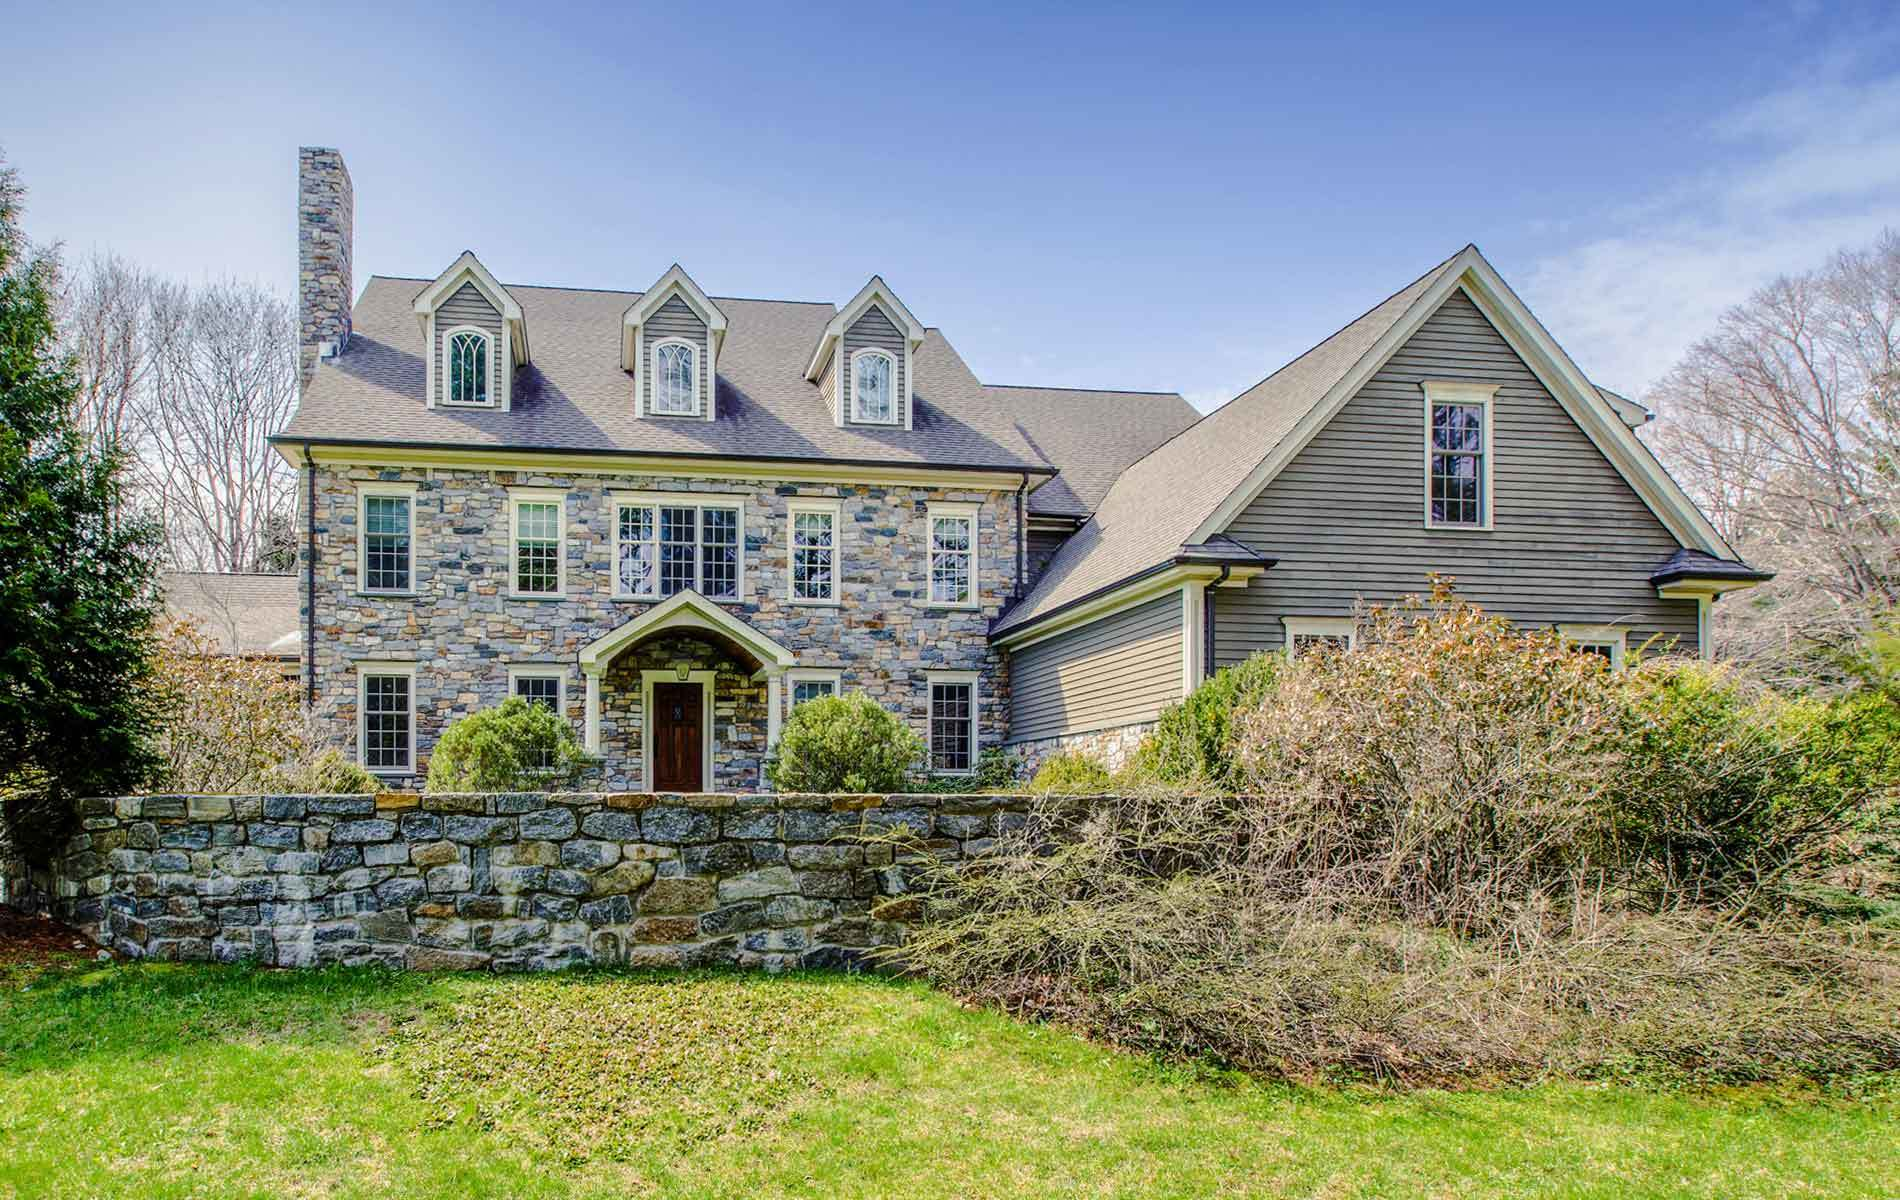 Luxury homes for sale in wilton ct buy luxurious houses for Luxurious houses for sale